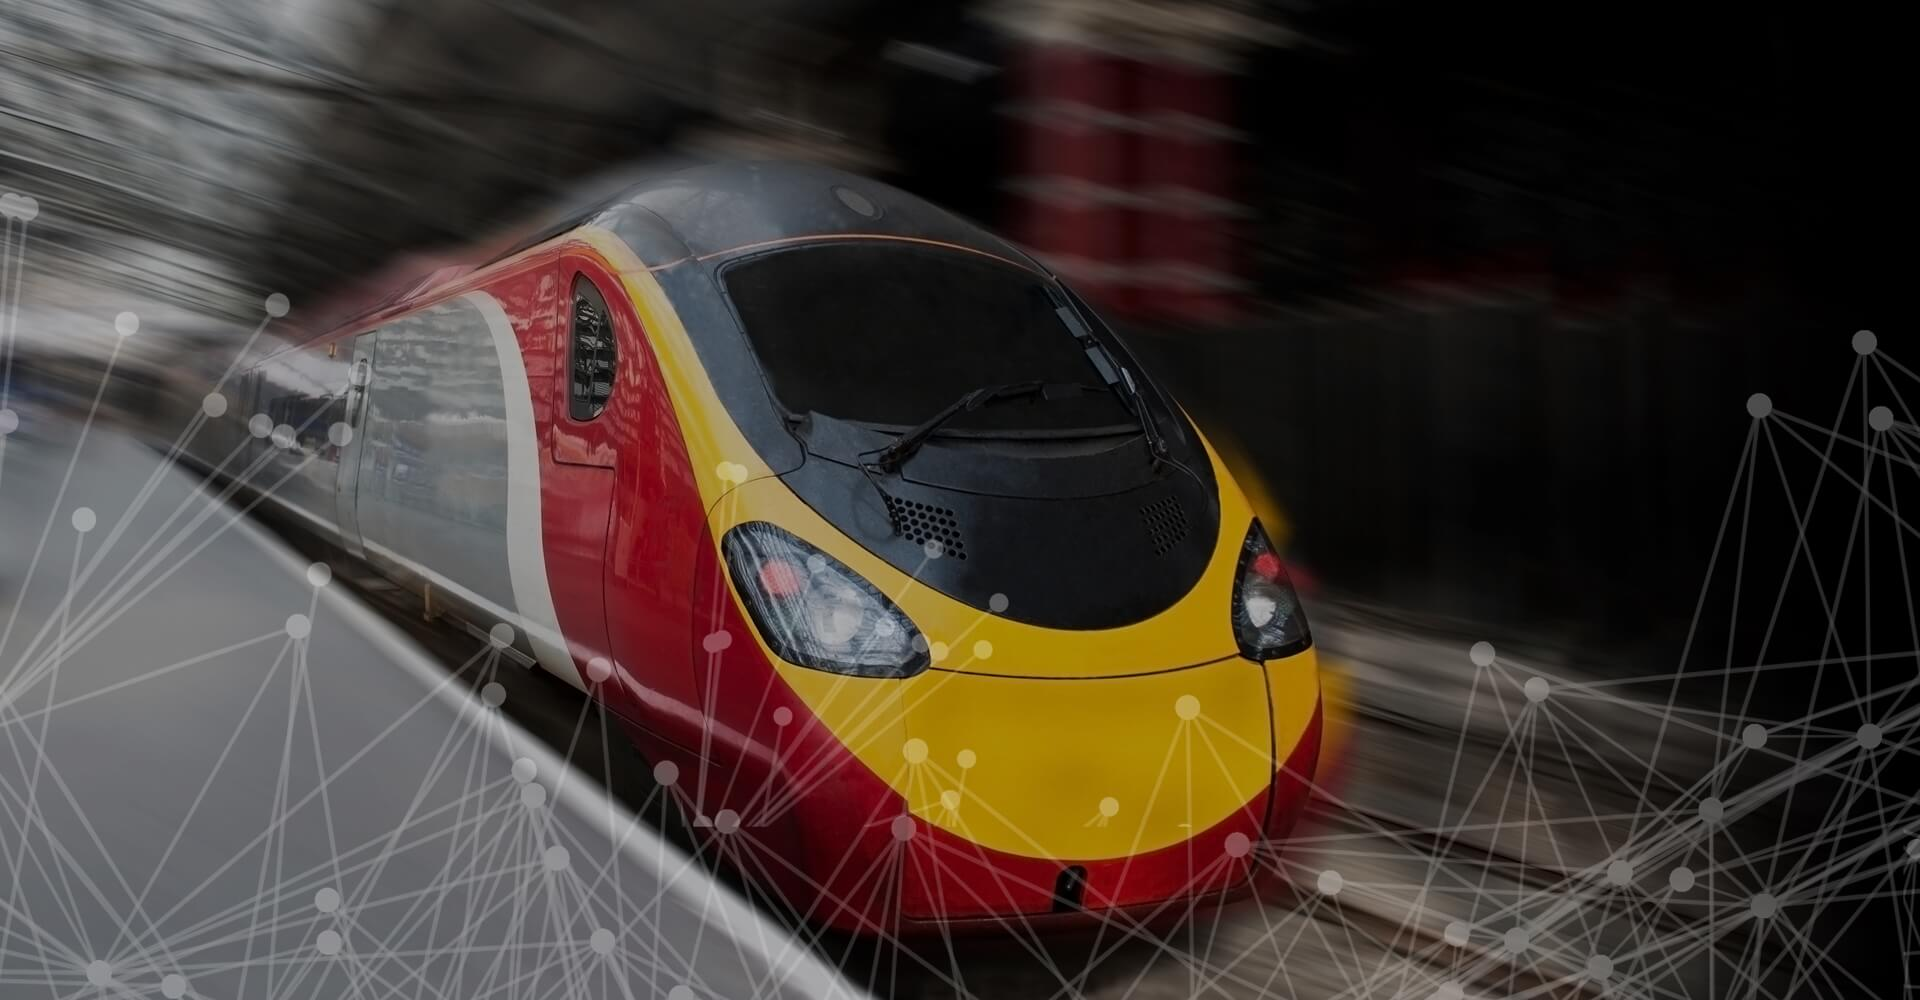 Test equipment & test solutions for the rail industry